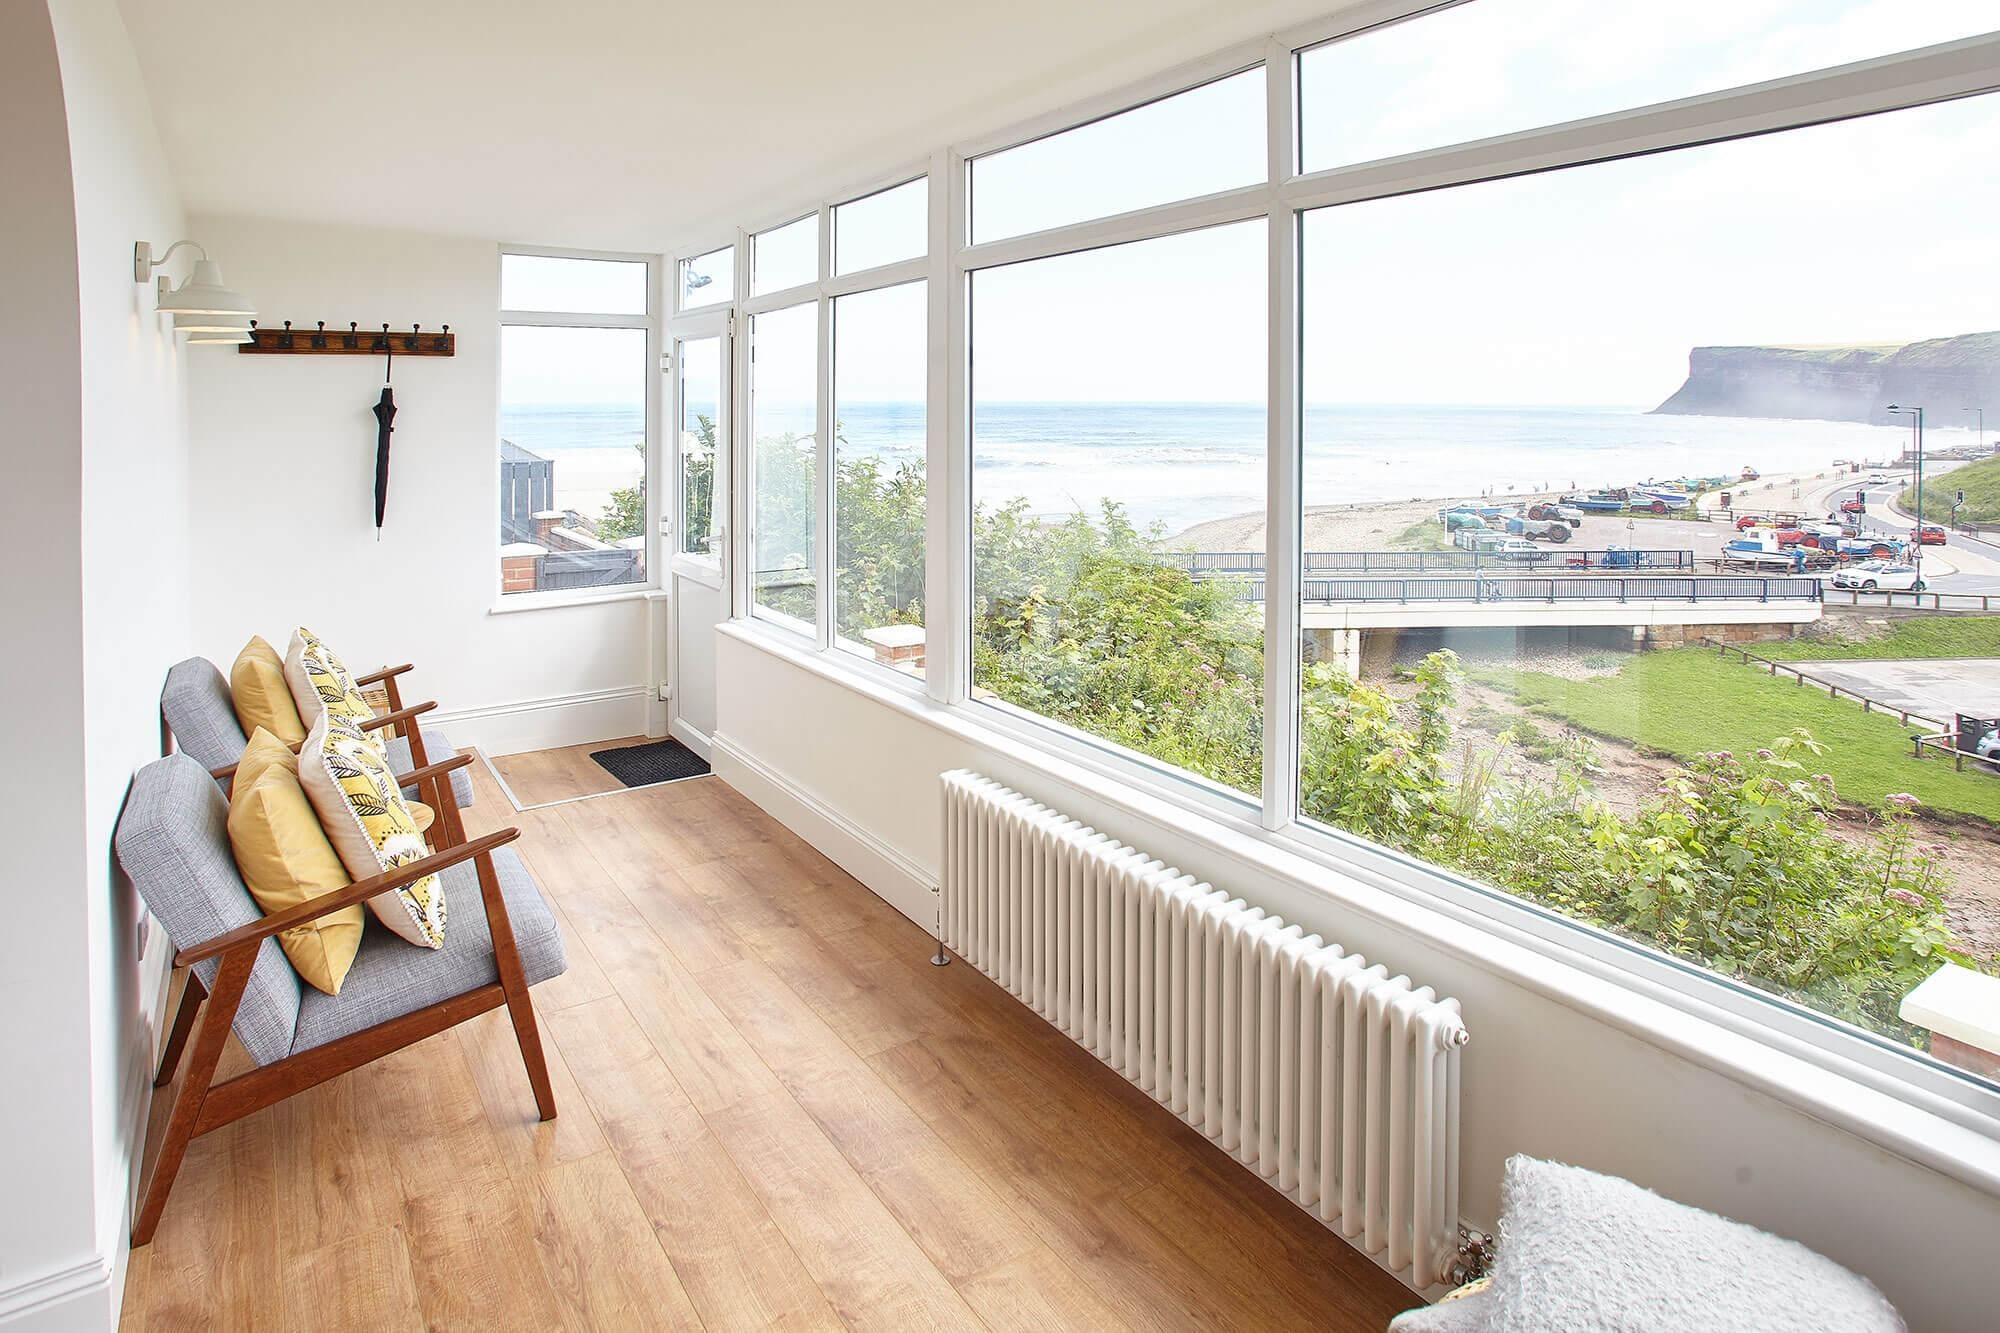 Property Image 1 - Beautiful Beach House in Saltburn-by-the-Sea with Sea Views